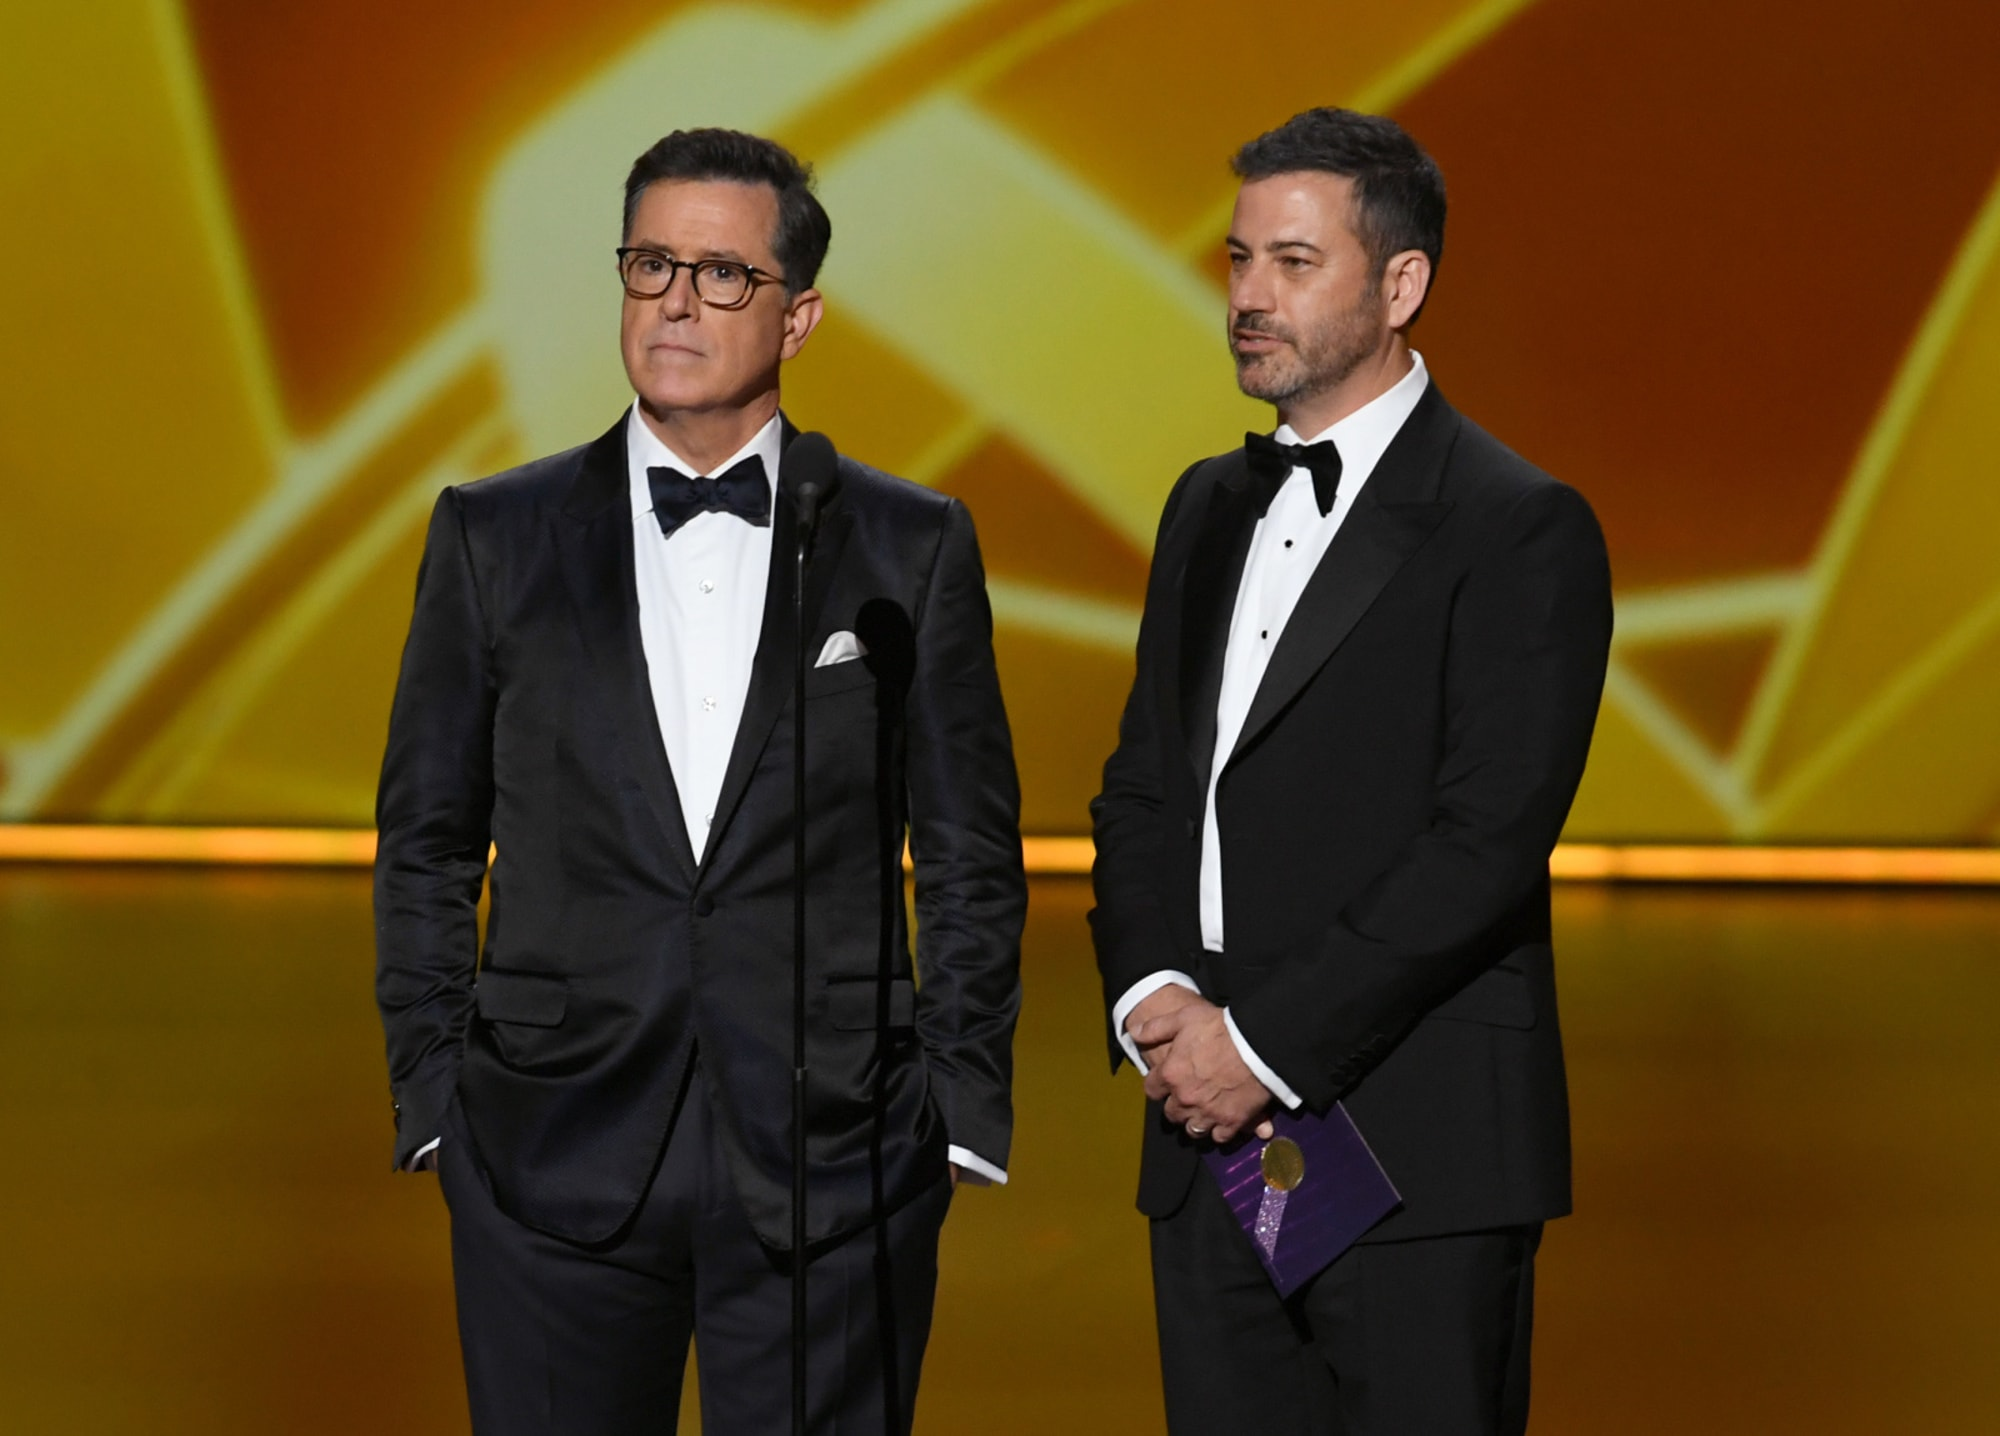 Late Night Stars Fallon Colbert And Kimmel To Host Charity Event One time, in 2017, he donned a wig, fake beard, and false gap in his teeth to host the show in character as david letterman. late night stars fallon colbert and